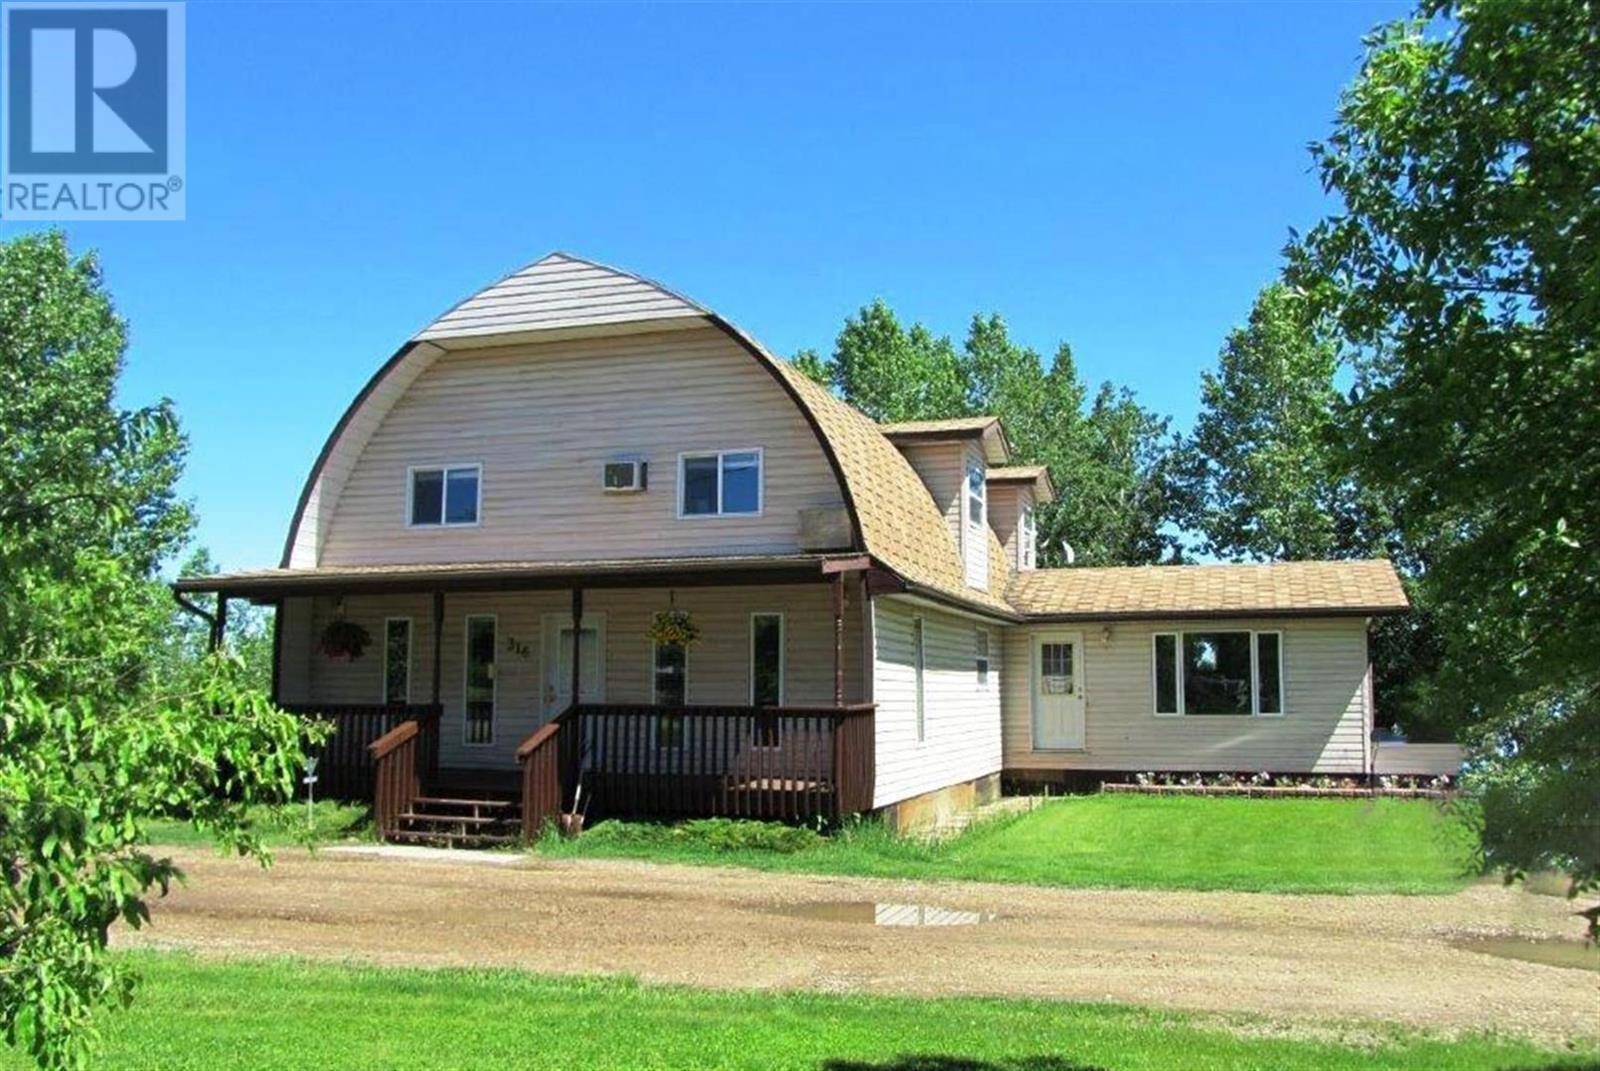 House for sale at 318 7th St E Unit 316 Meadow Lake Saskatchewan - MLS: SK776635